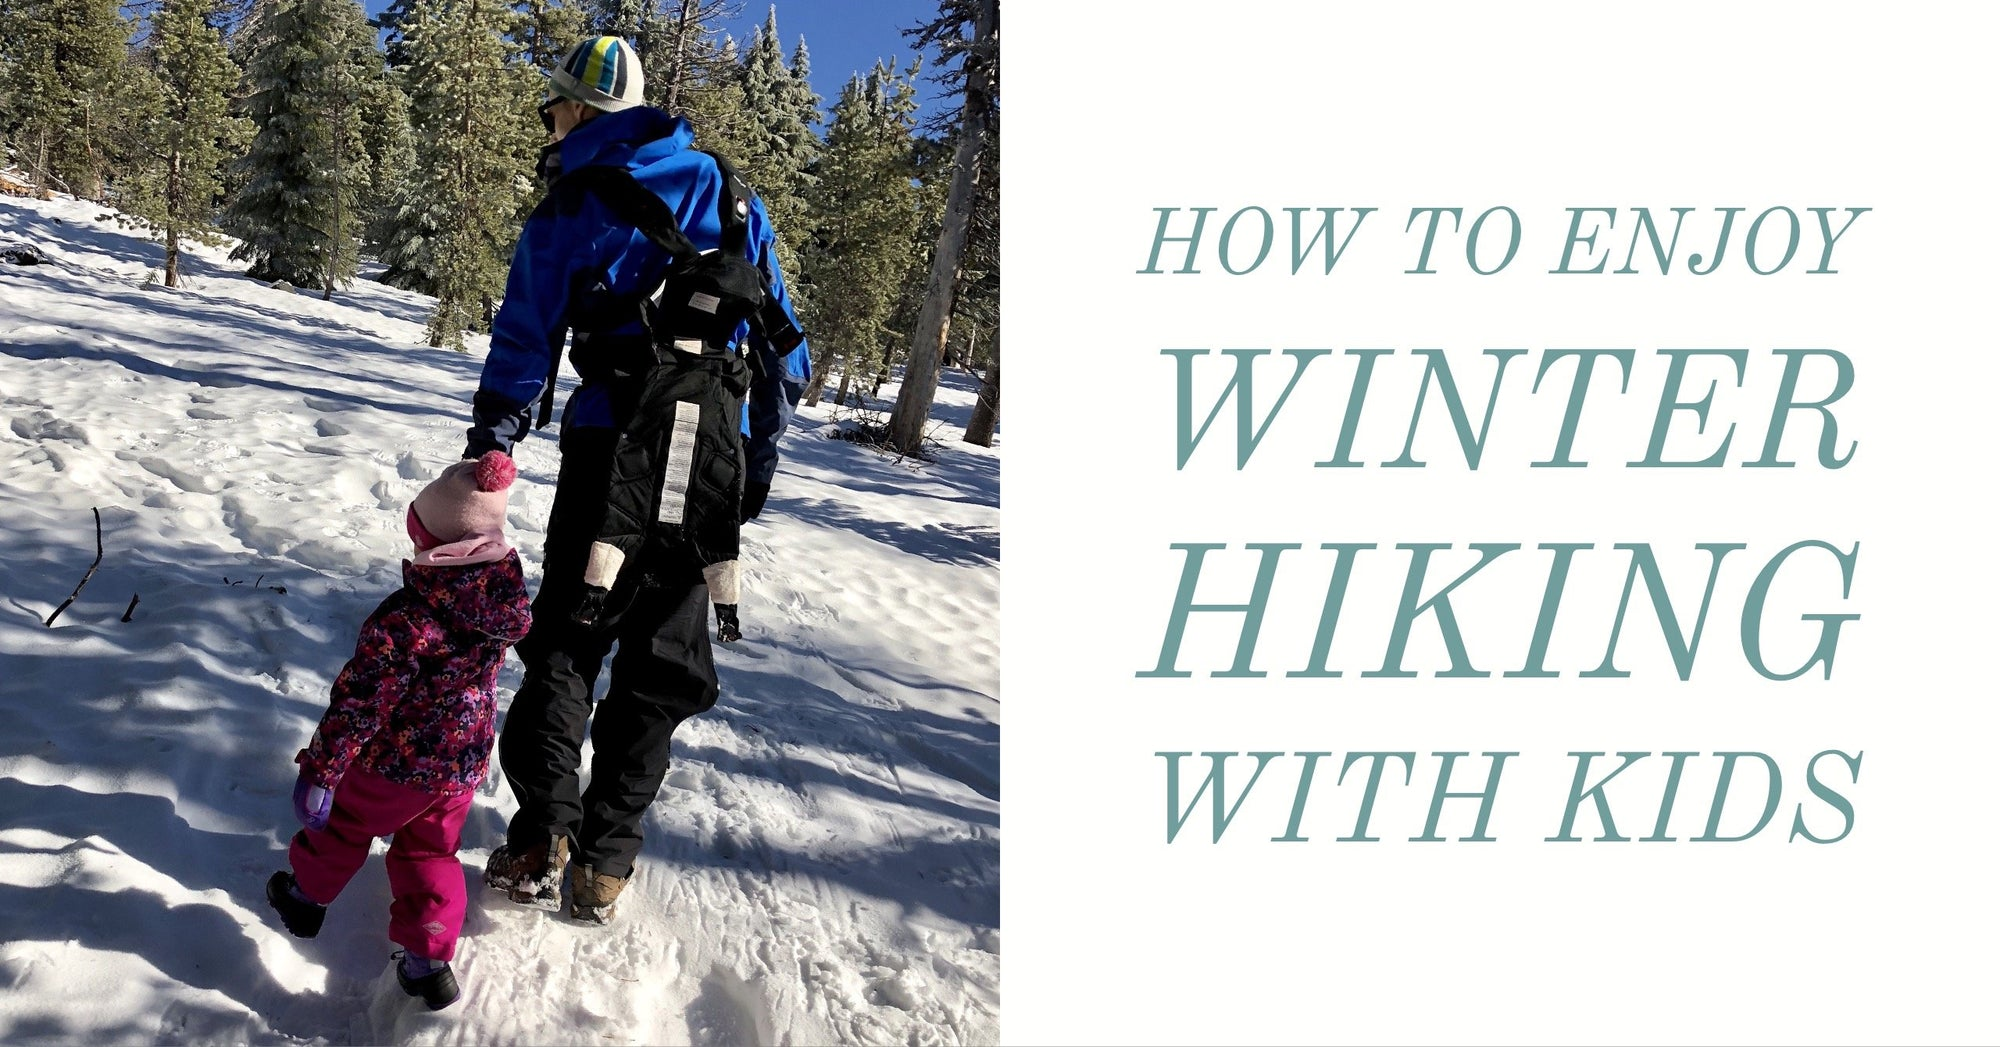 How to enjoy winter hiking with kids. I'd hike that is sharing 5 great tips on how to enjoy winter hikes with kids rather than dread them. Visit idhikethat.com and start planning your next family adventure.